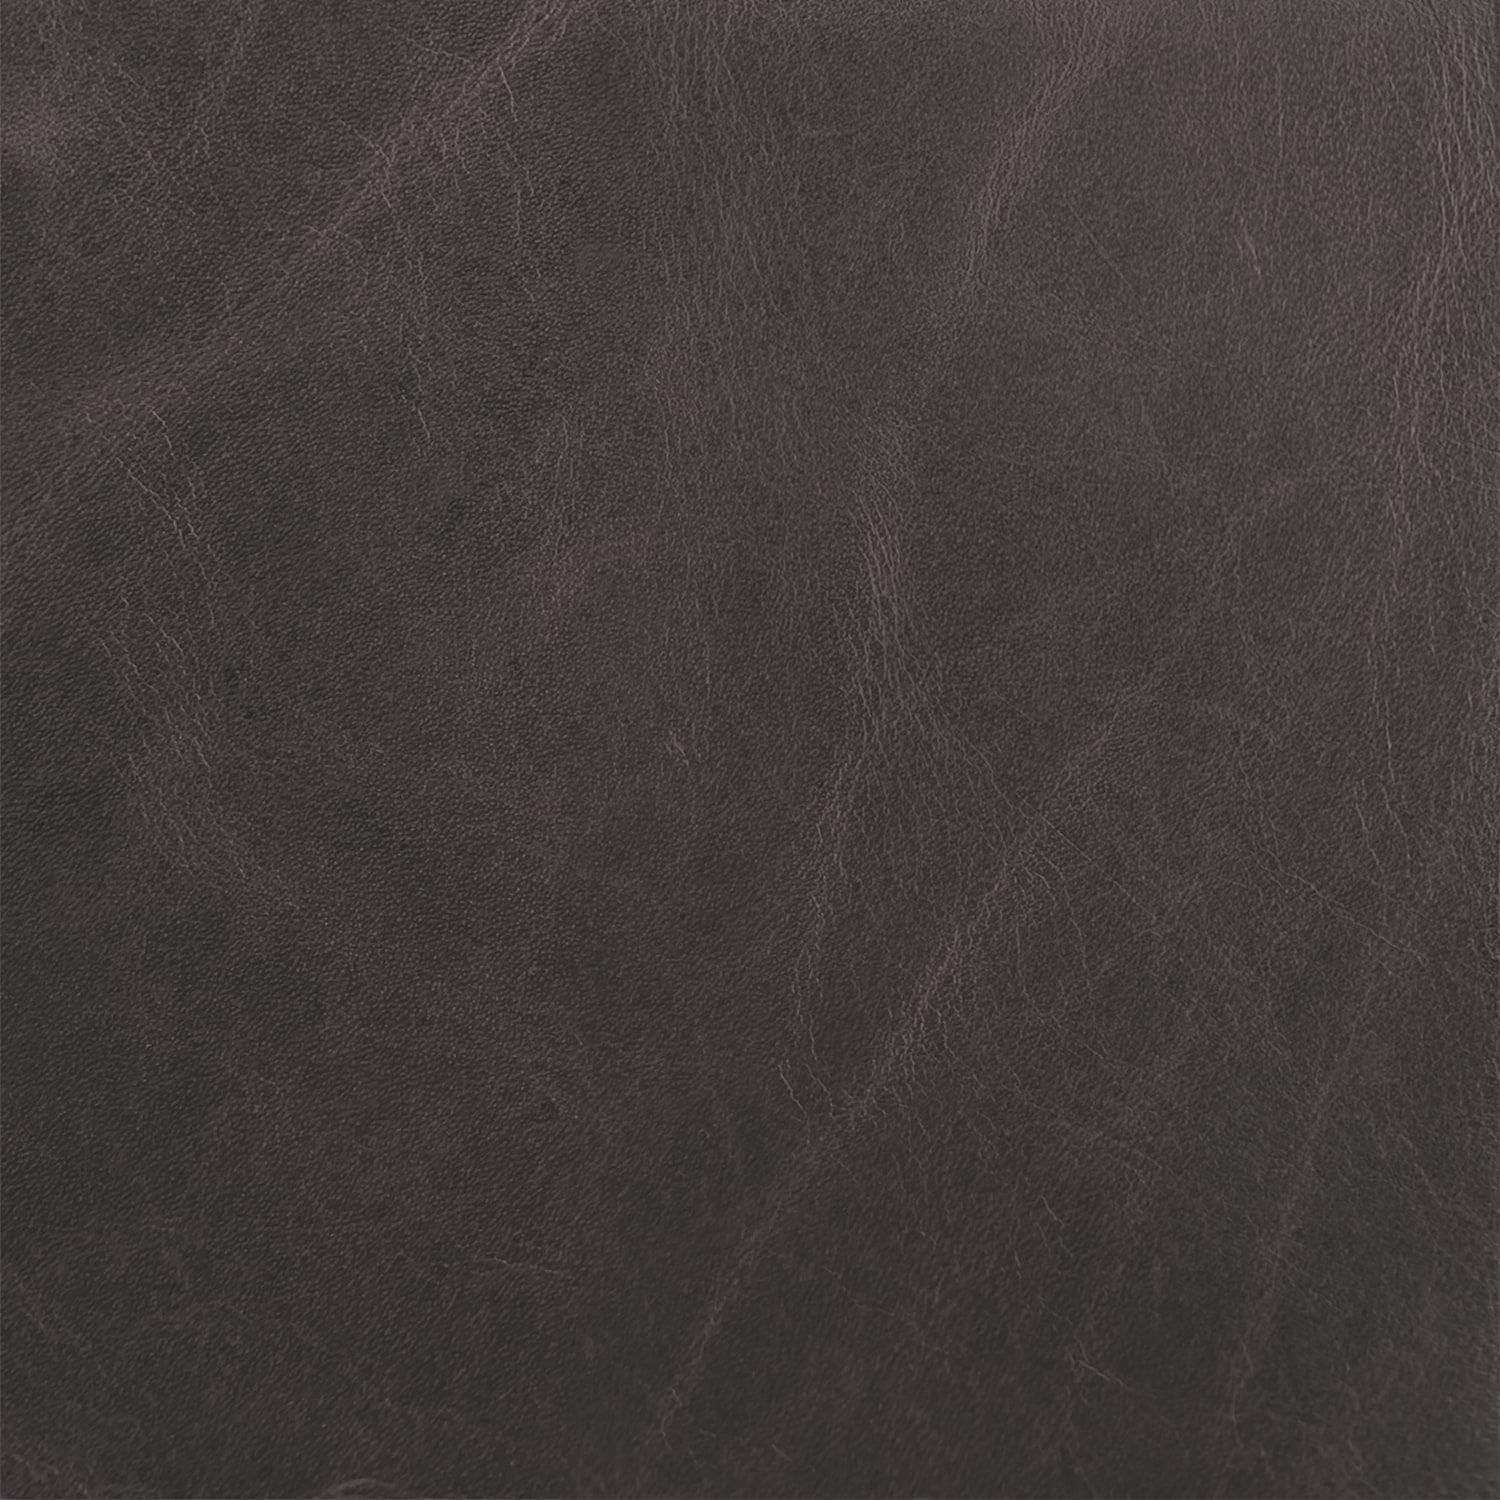 Flagstaff: Clamshell (grade G): #FLG1631<br>Unique distressed markings, permiated with wax, rich vibrant color; light protection